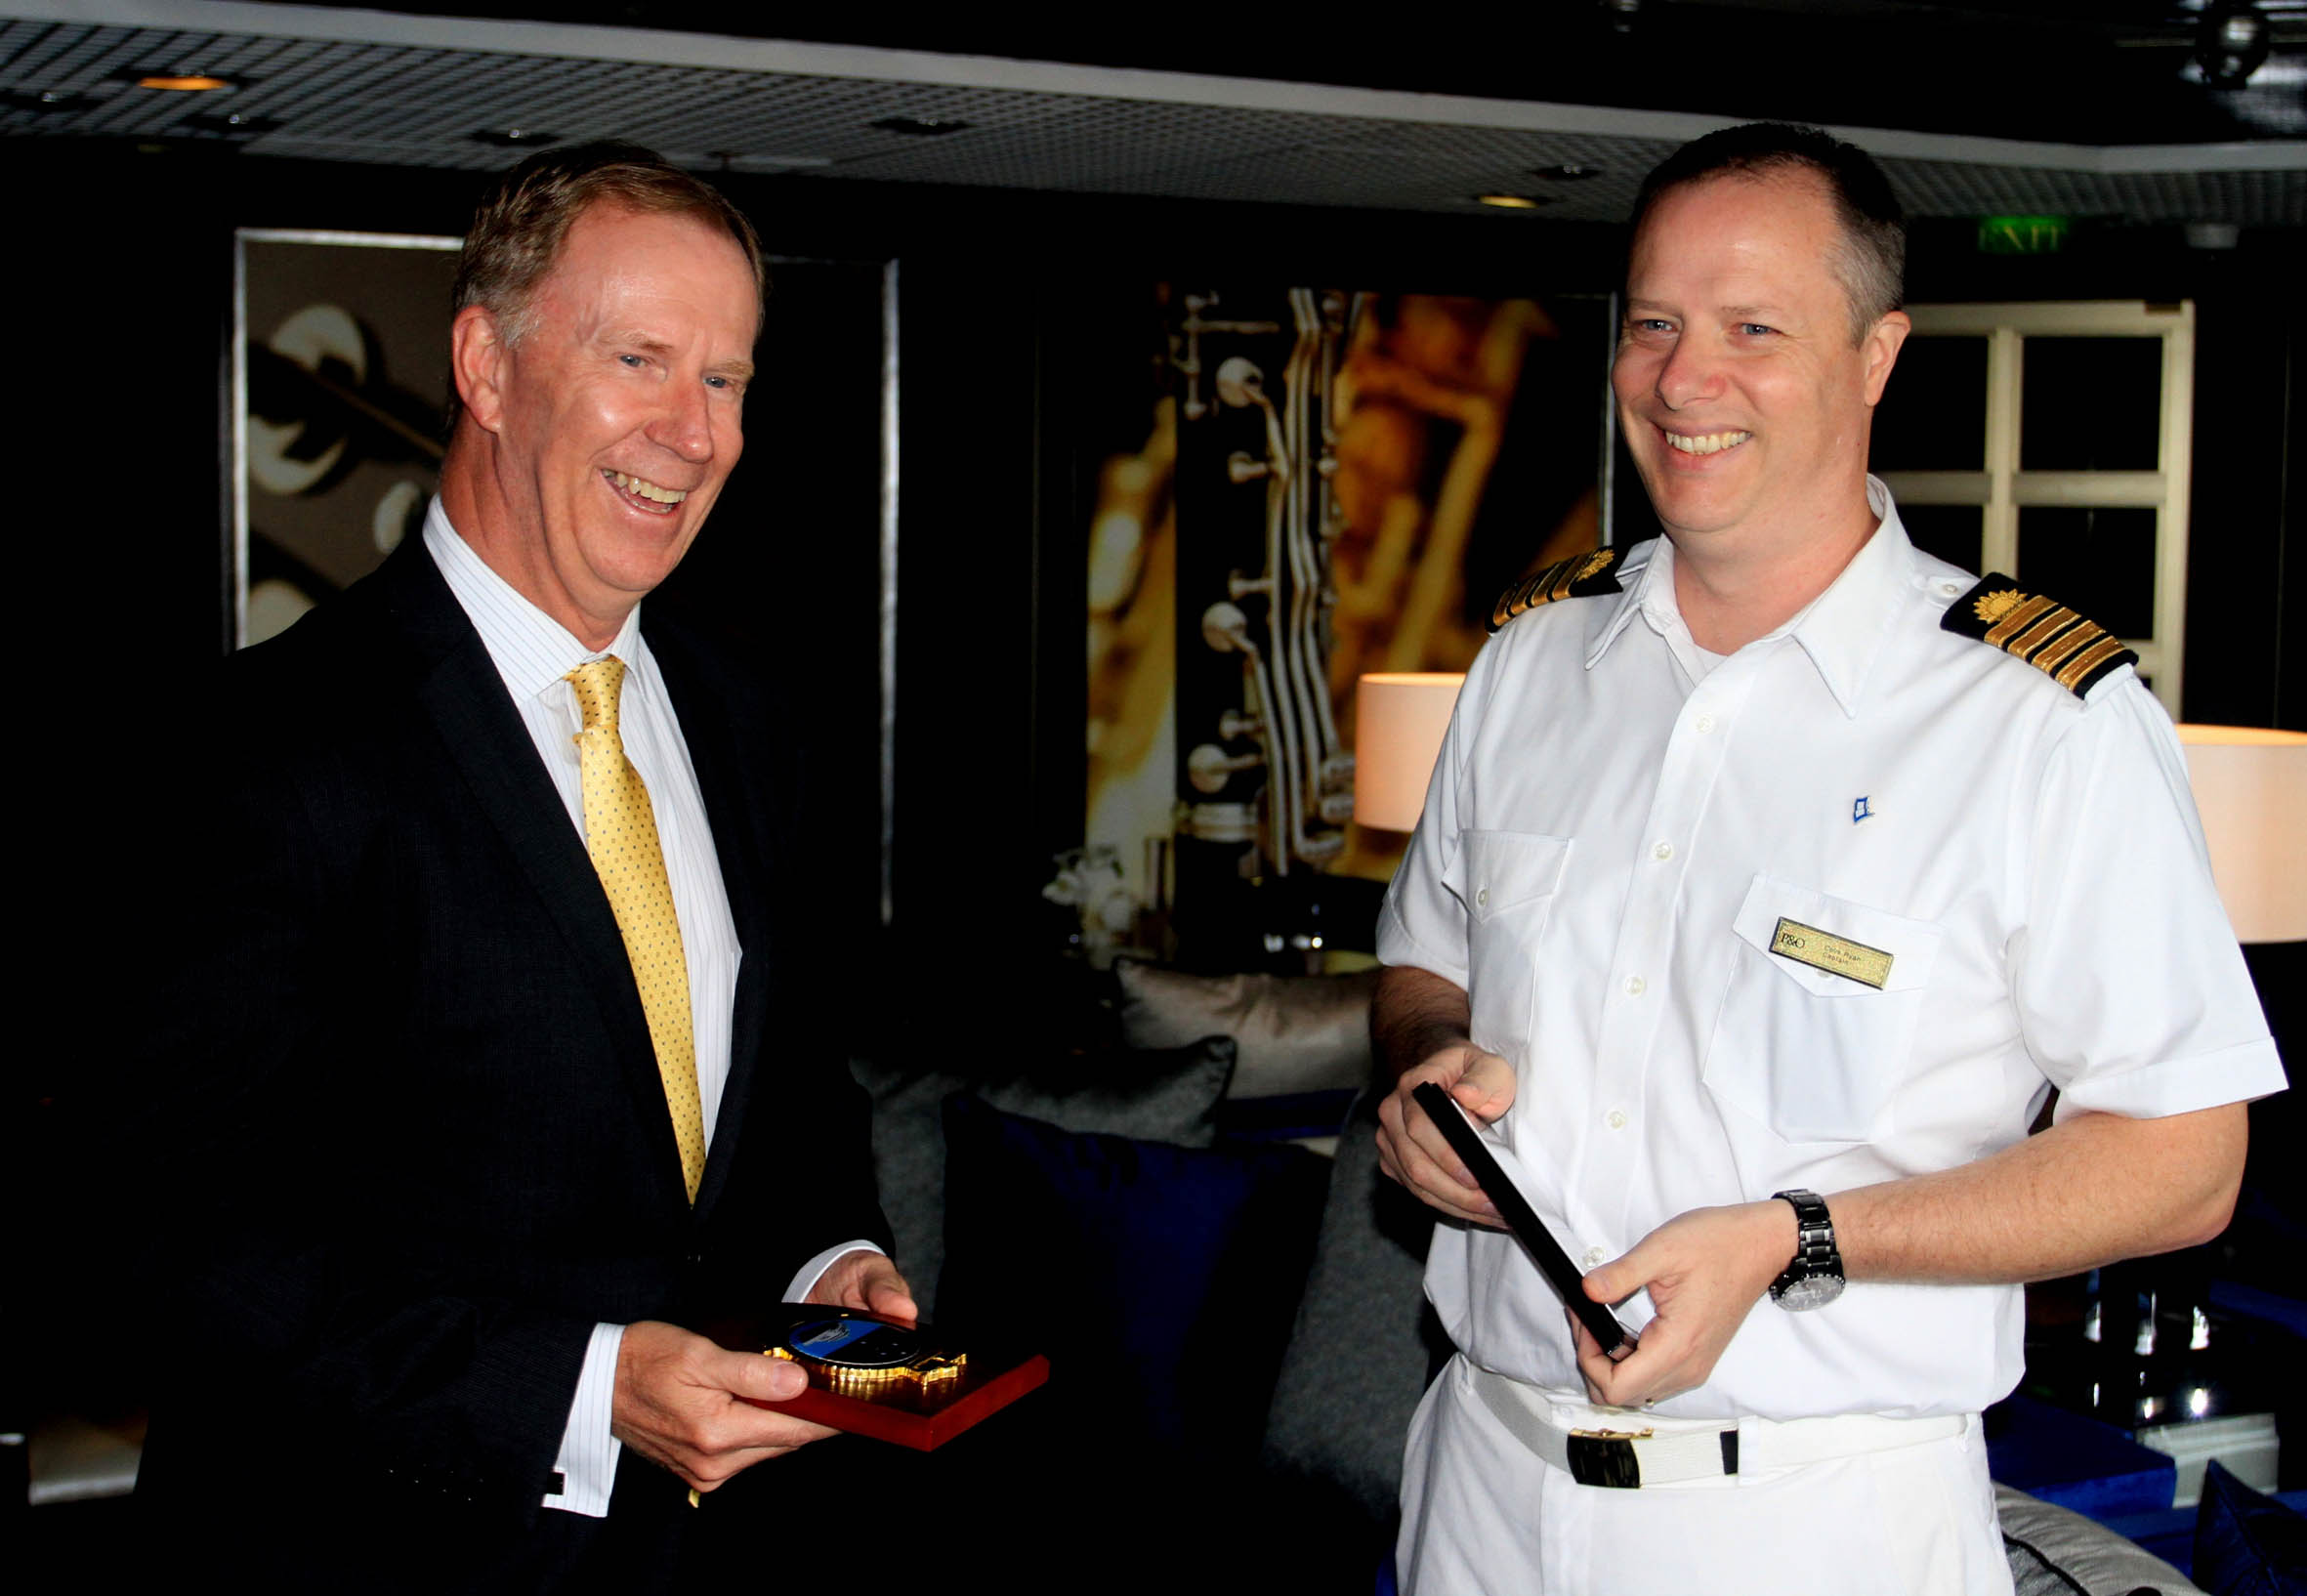 CEO Port of Newcastle Geoff Crowe and Pacific Aria Capt Colm Ryan plaque exchange in Newcastle